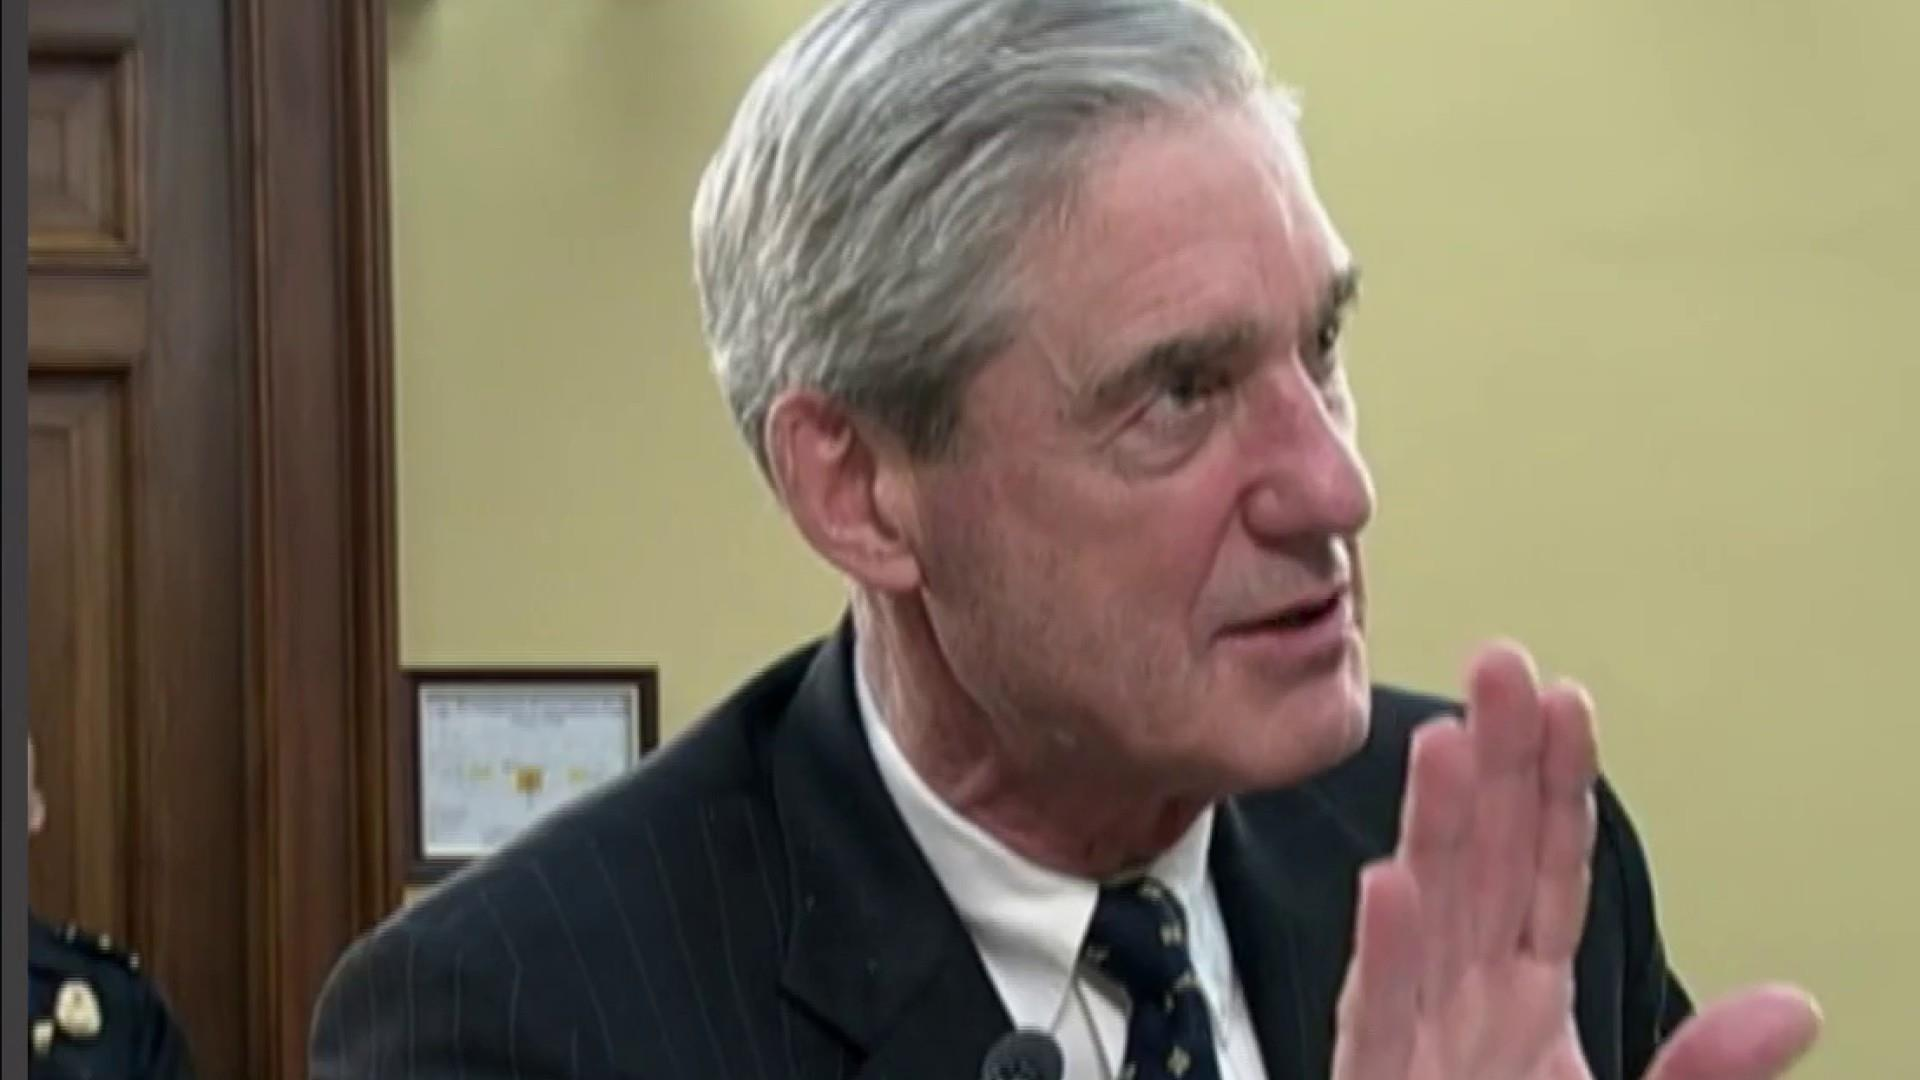 Mueller scheduled to testify a week later